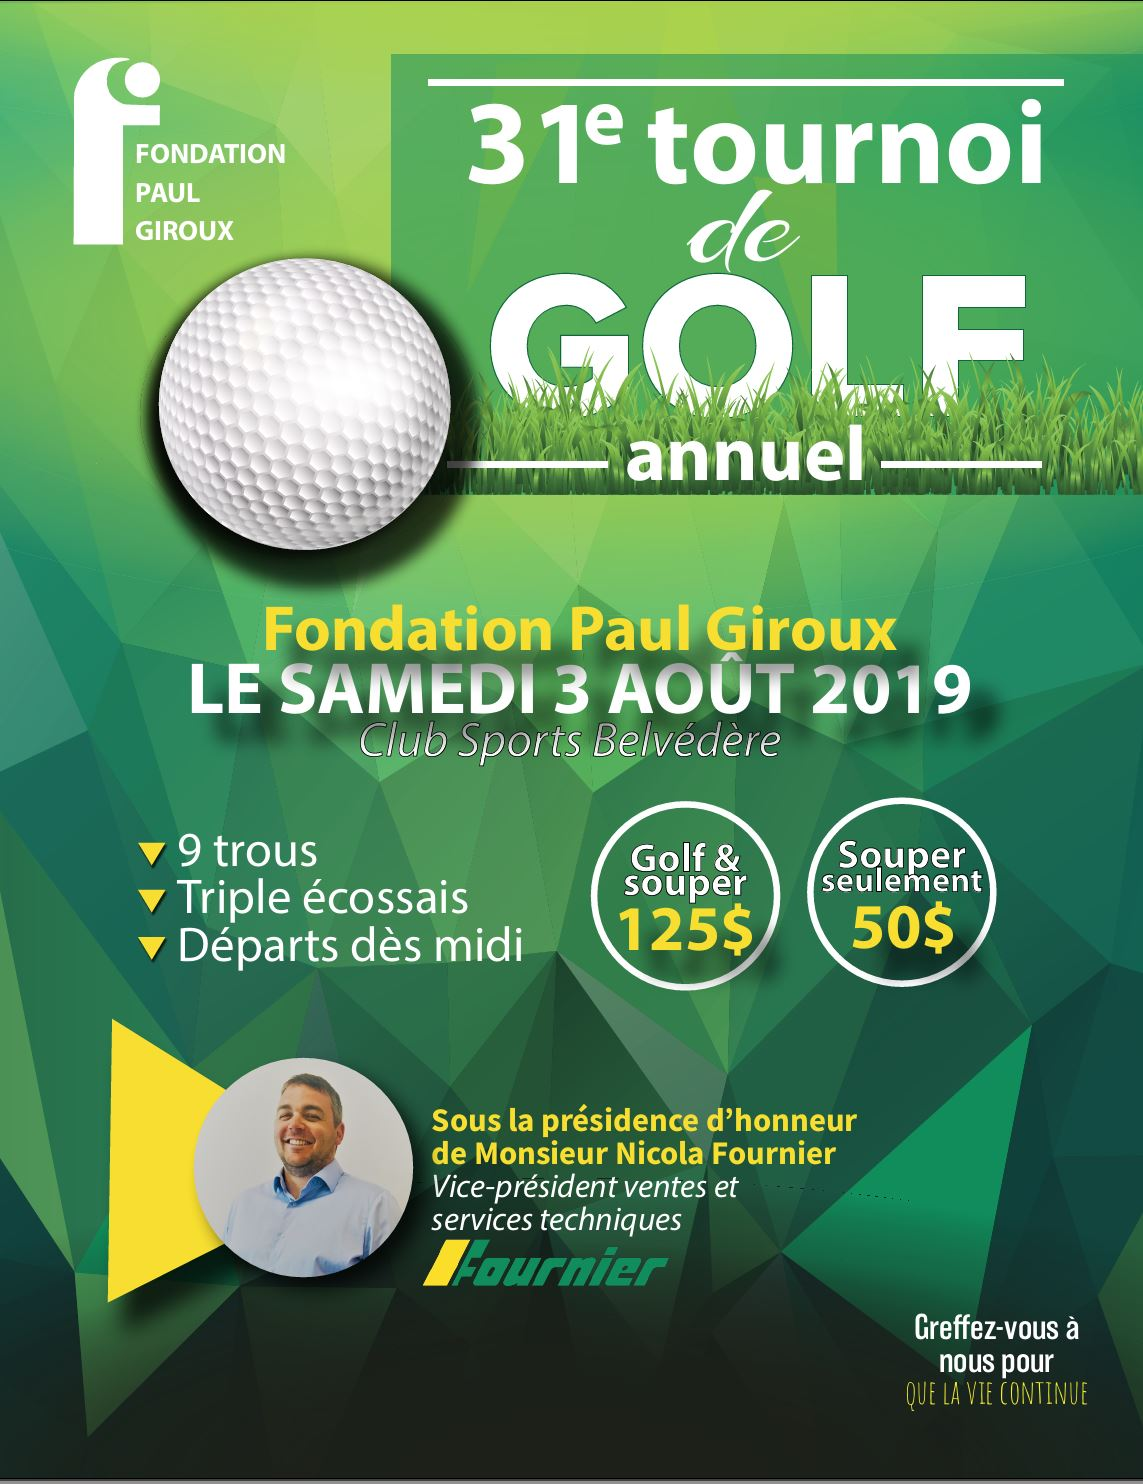 31e tournoi de Golf de la fondation Paul Giroux